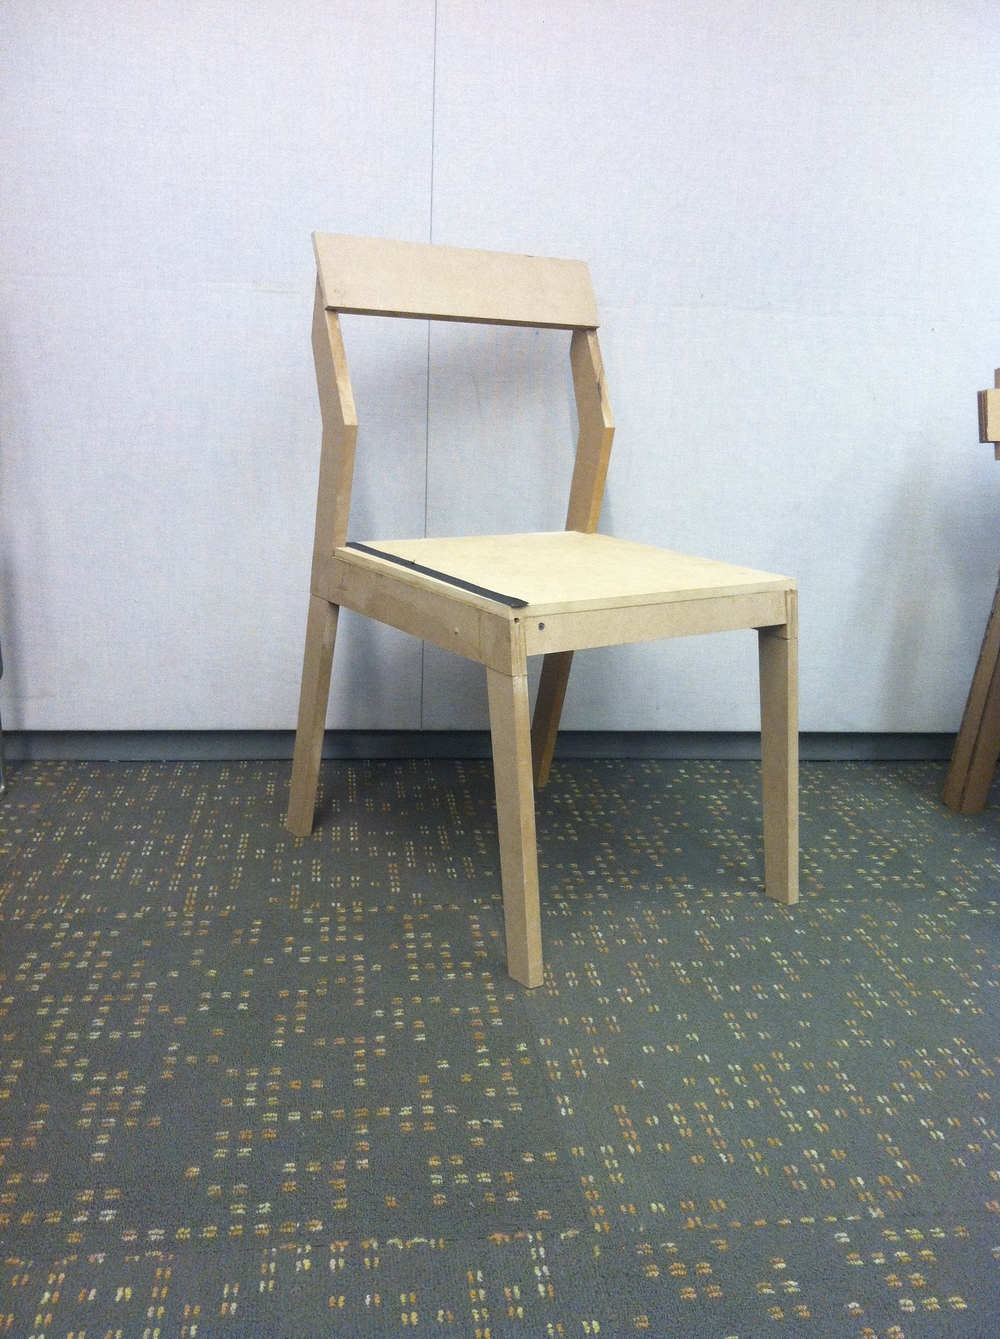 This first prototype was made from MDF